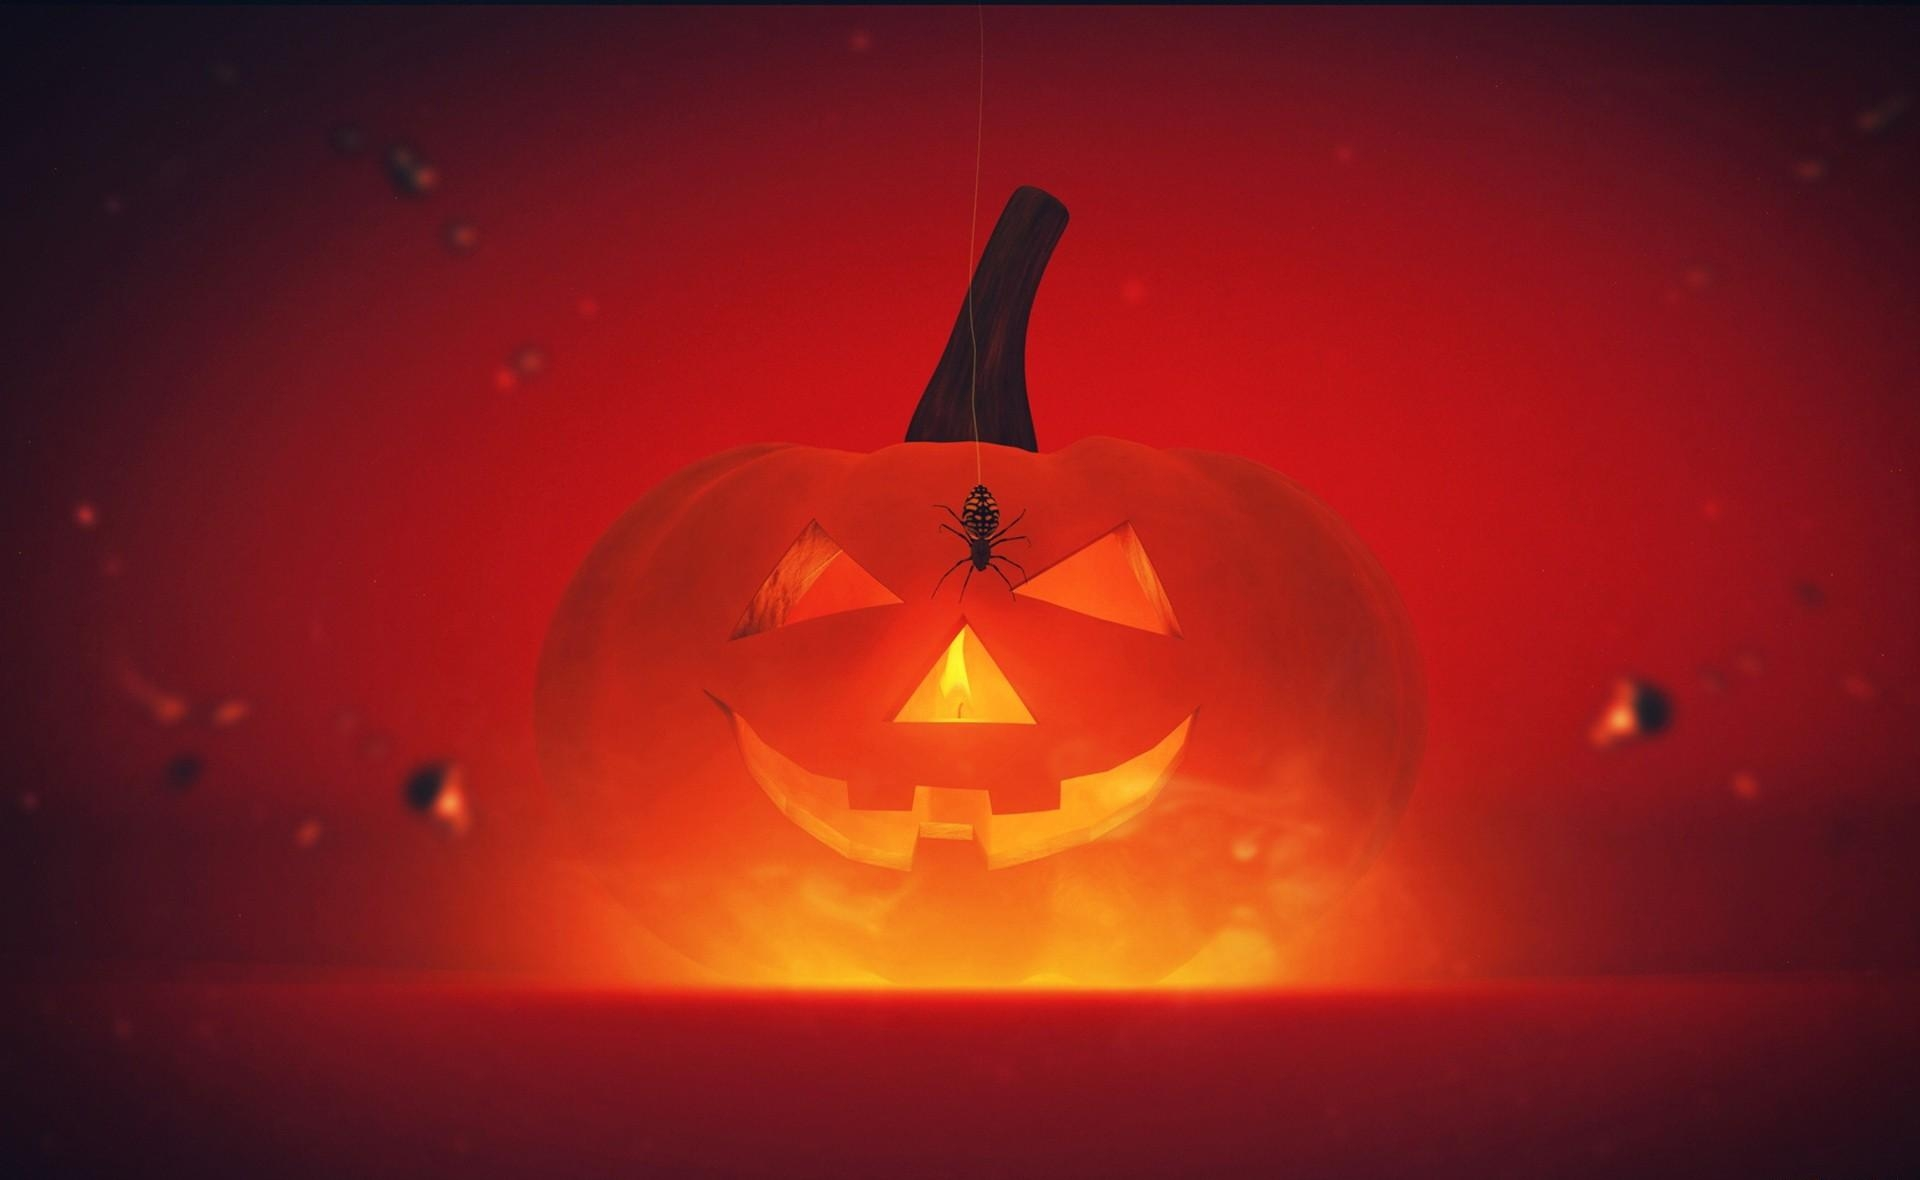 66807 download wallpaper Holidays, Halloween, Holiday, Pumpkin, Spider, Shine, Light screensavers and pictures for free